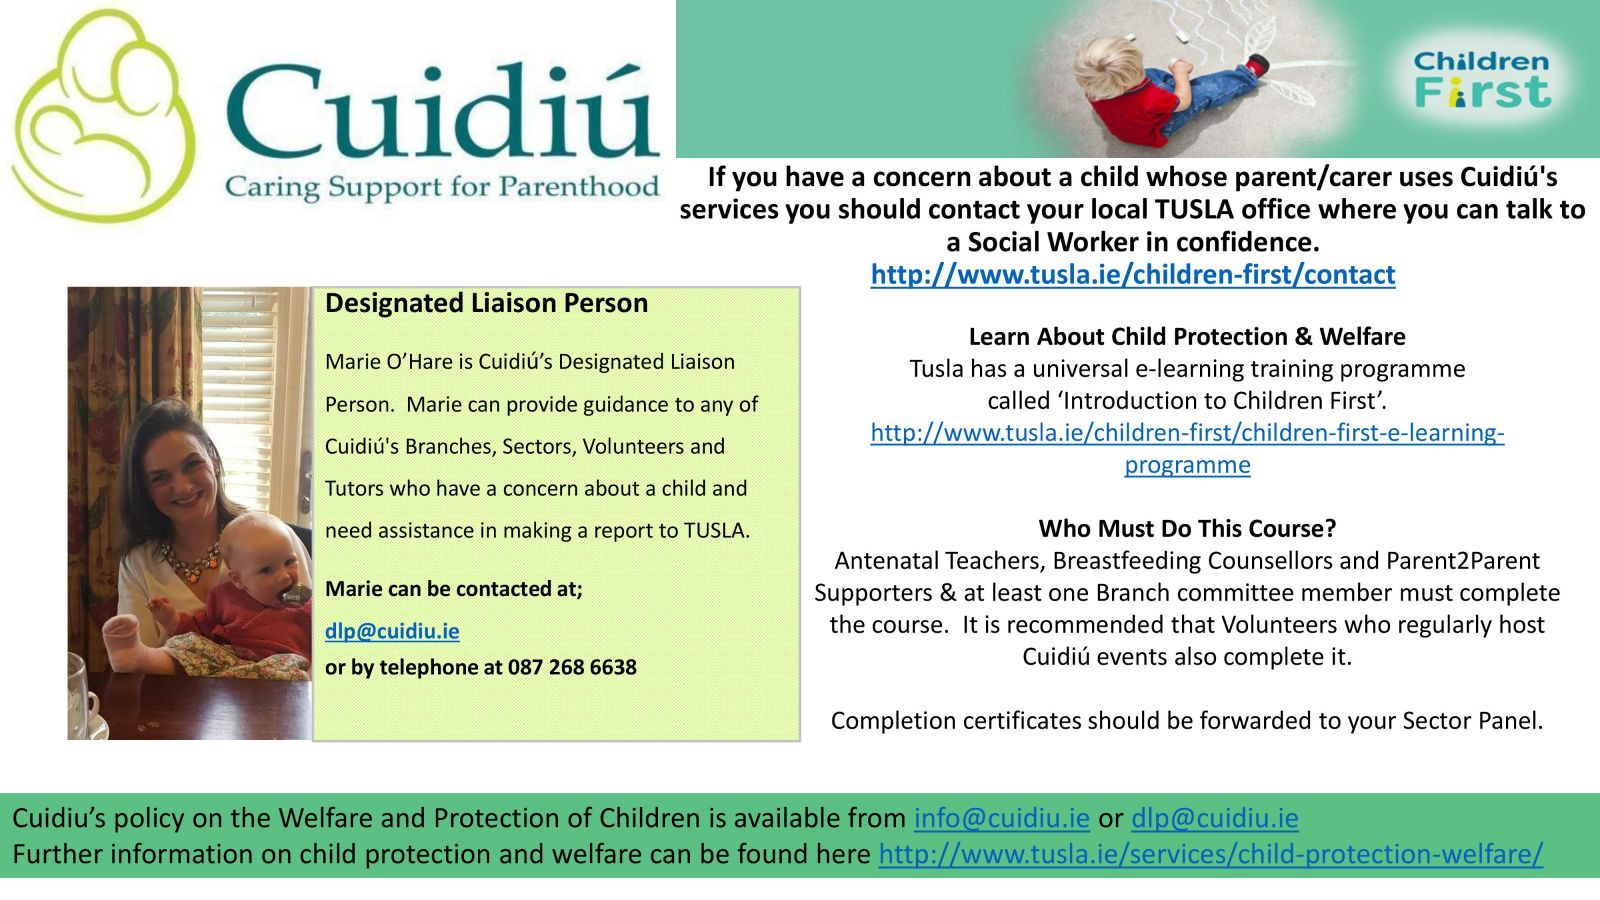 Designated Liaison Person for Child Protection